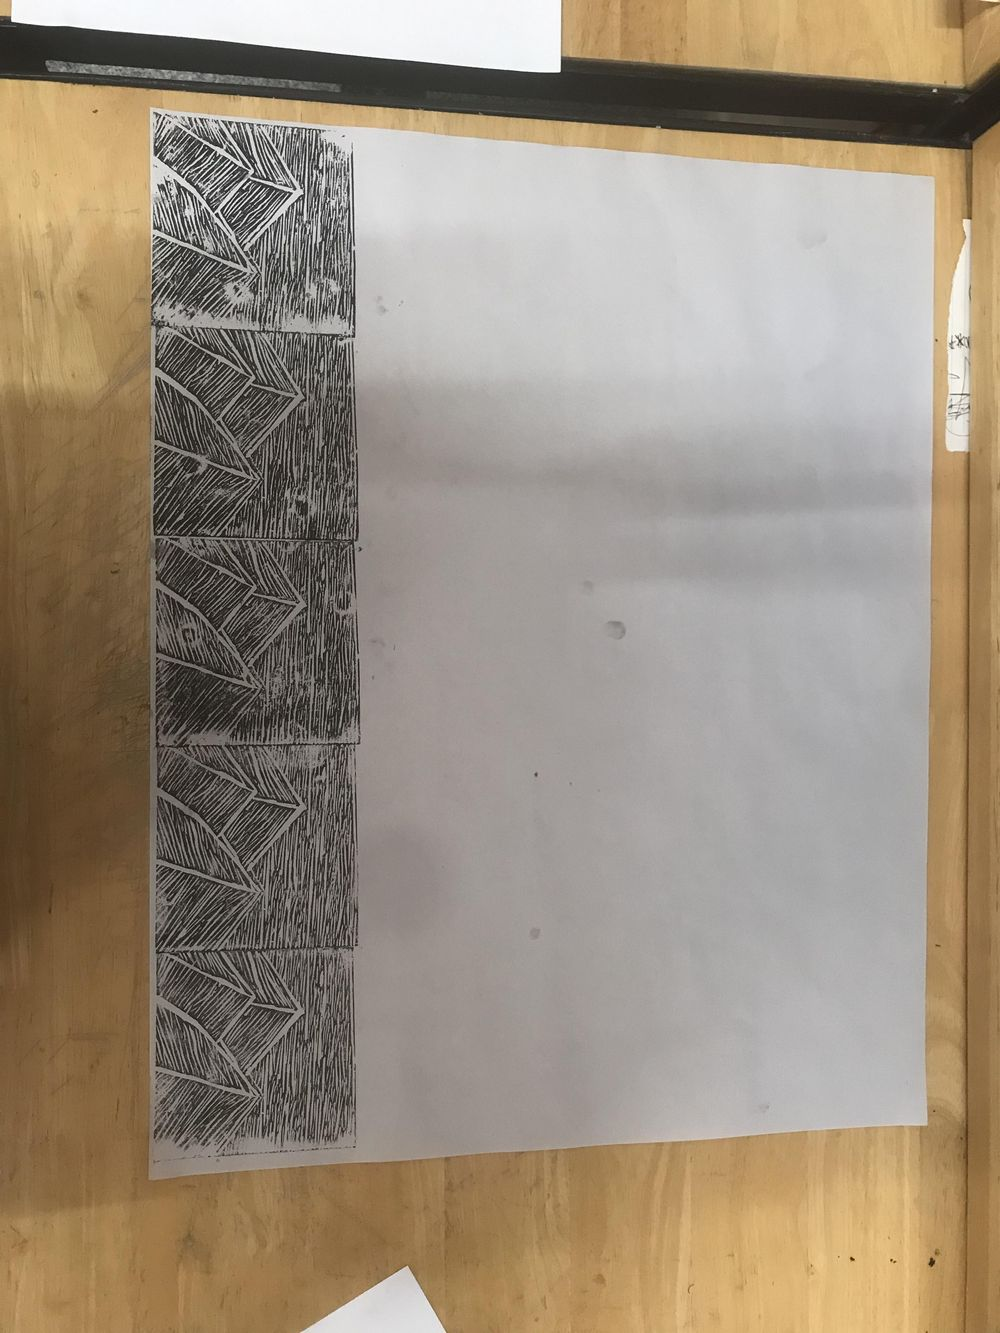 Lino cut Mountains - image 2 - student project